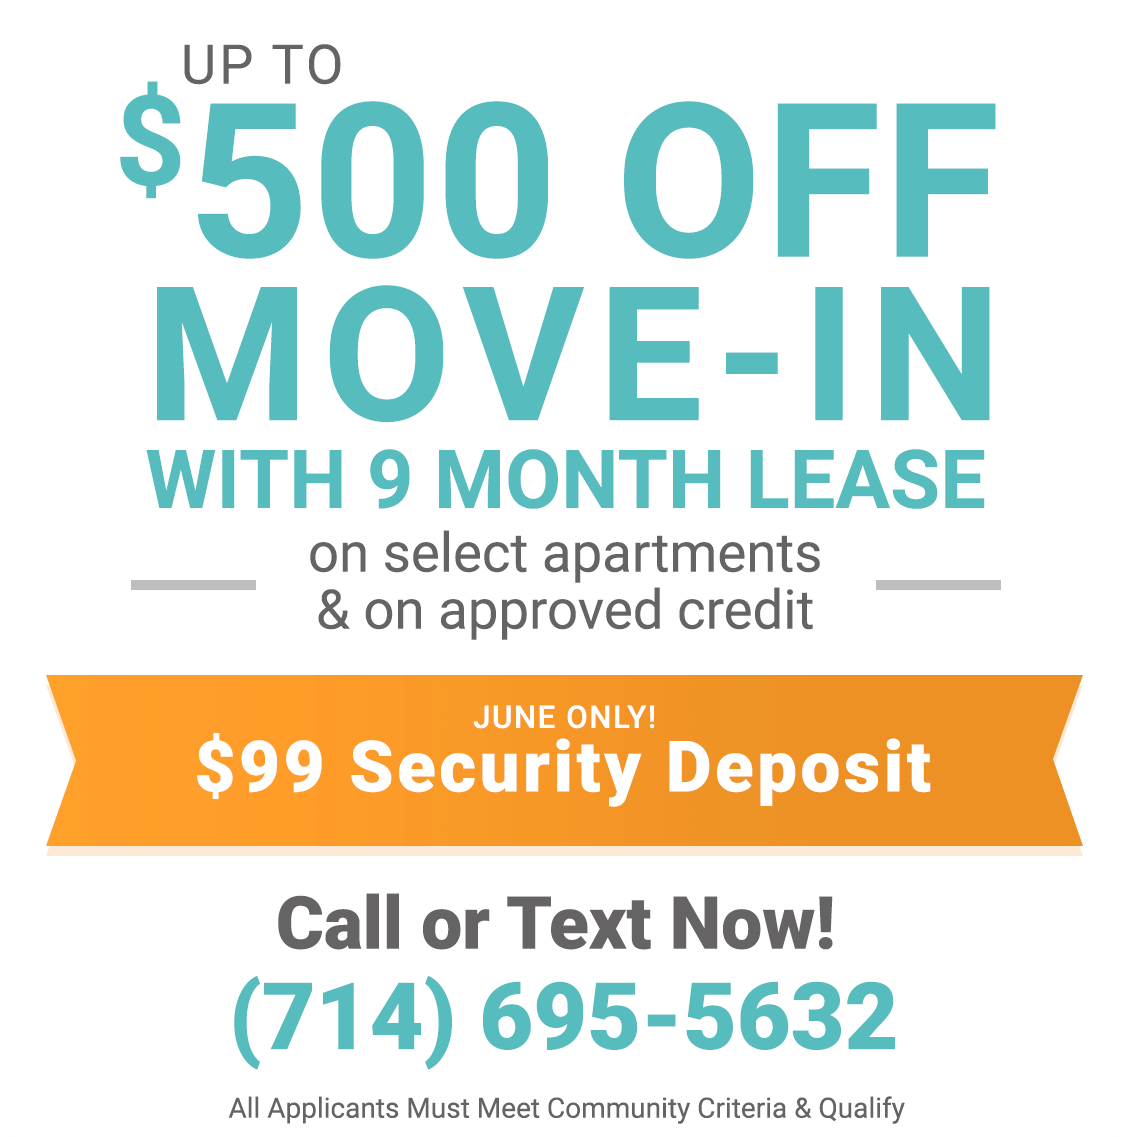 $500 off move-in with 9 month lease only during June